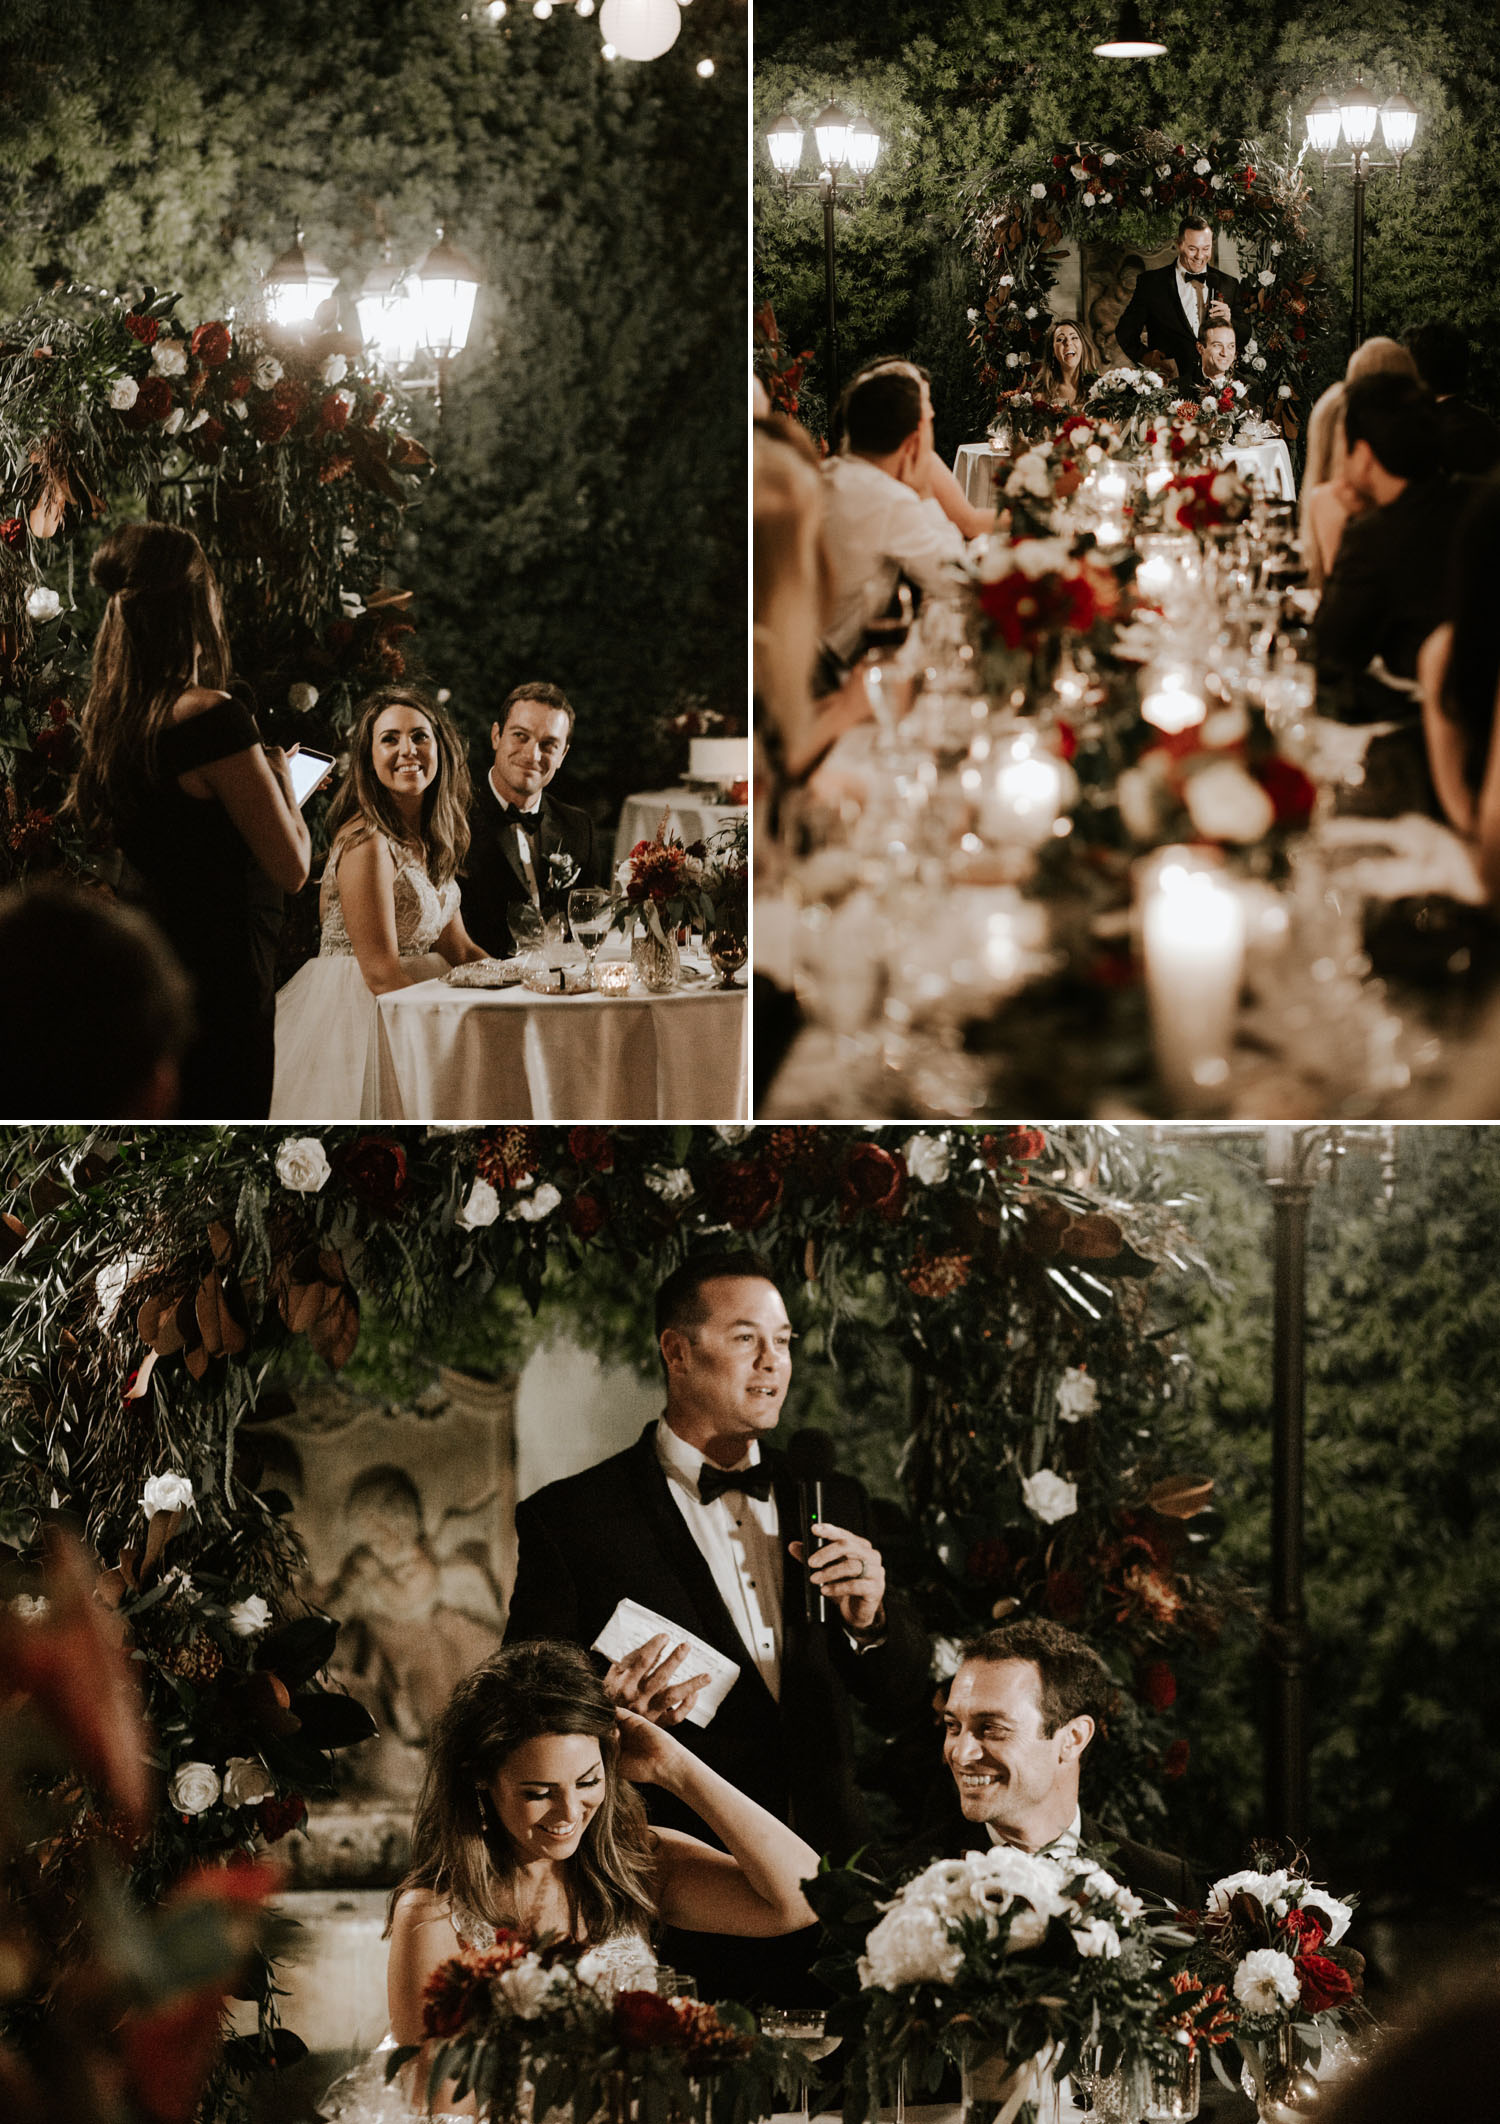 Franciscan Garden wedding in San Juan Capistrano by Paige Nelson Photography